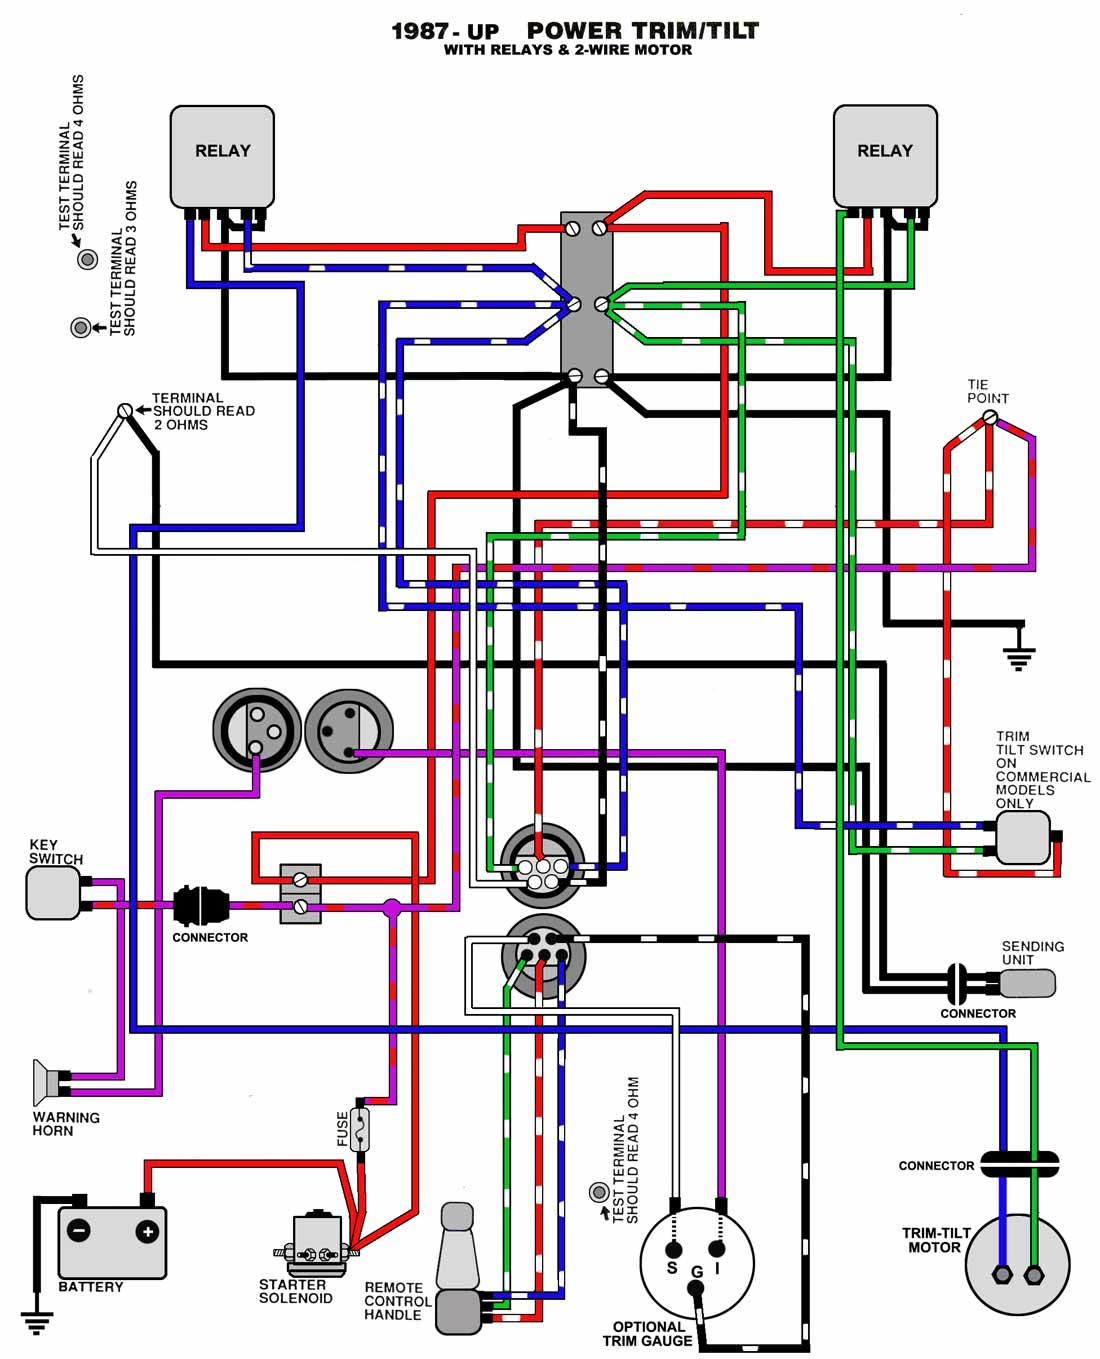 Voltmeter Wiring Diagram For Johnson Outboard - Wiring Diagram Best on mercruiser tilt trim wiring diagram, ignition coil wiring diagram, starter solenoid wiring diagram, bass tracker electrical wiring diagram, johnson outboard parts diagram, hp mercury outboard wiring diagram, universal ignition switch diagram, mercruiser 3.0 parts diagram, johnson wiring harness diagram, basic switch diagram, 50 hp force outboard wiring diagram, outboard motor ignition switch diagram, evinrude switch diagram, johnson motor wiring diagram, johnson outboard wiring diagram, painless wiring diagram, omc key switch diagram, evinrude tachometer wiring diagram, mercruiser 3.0 carburetor diagram, outboard motor wiring diagram,